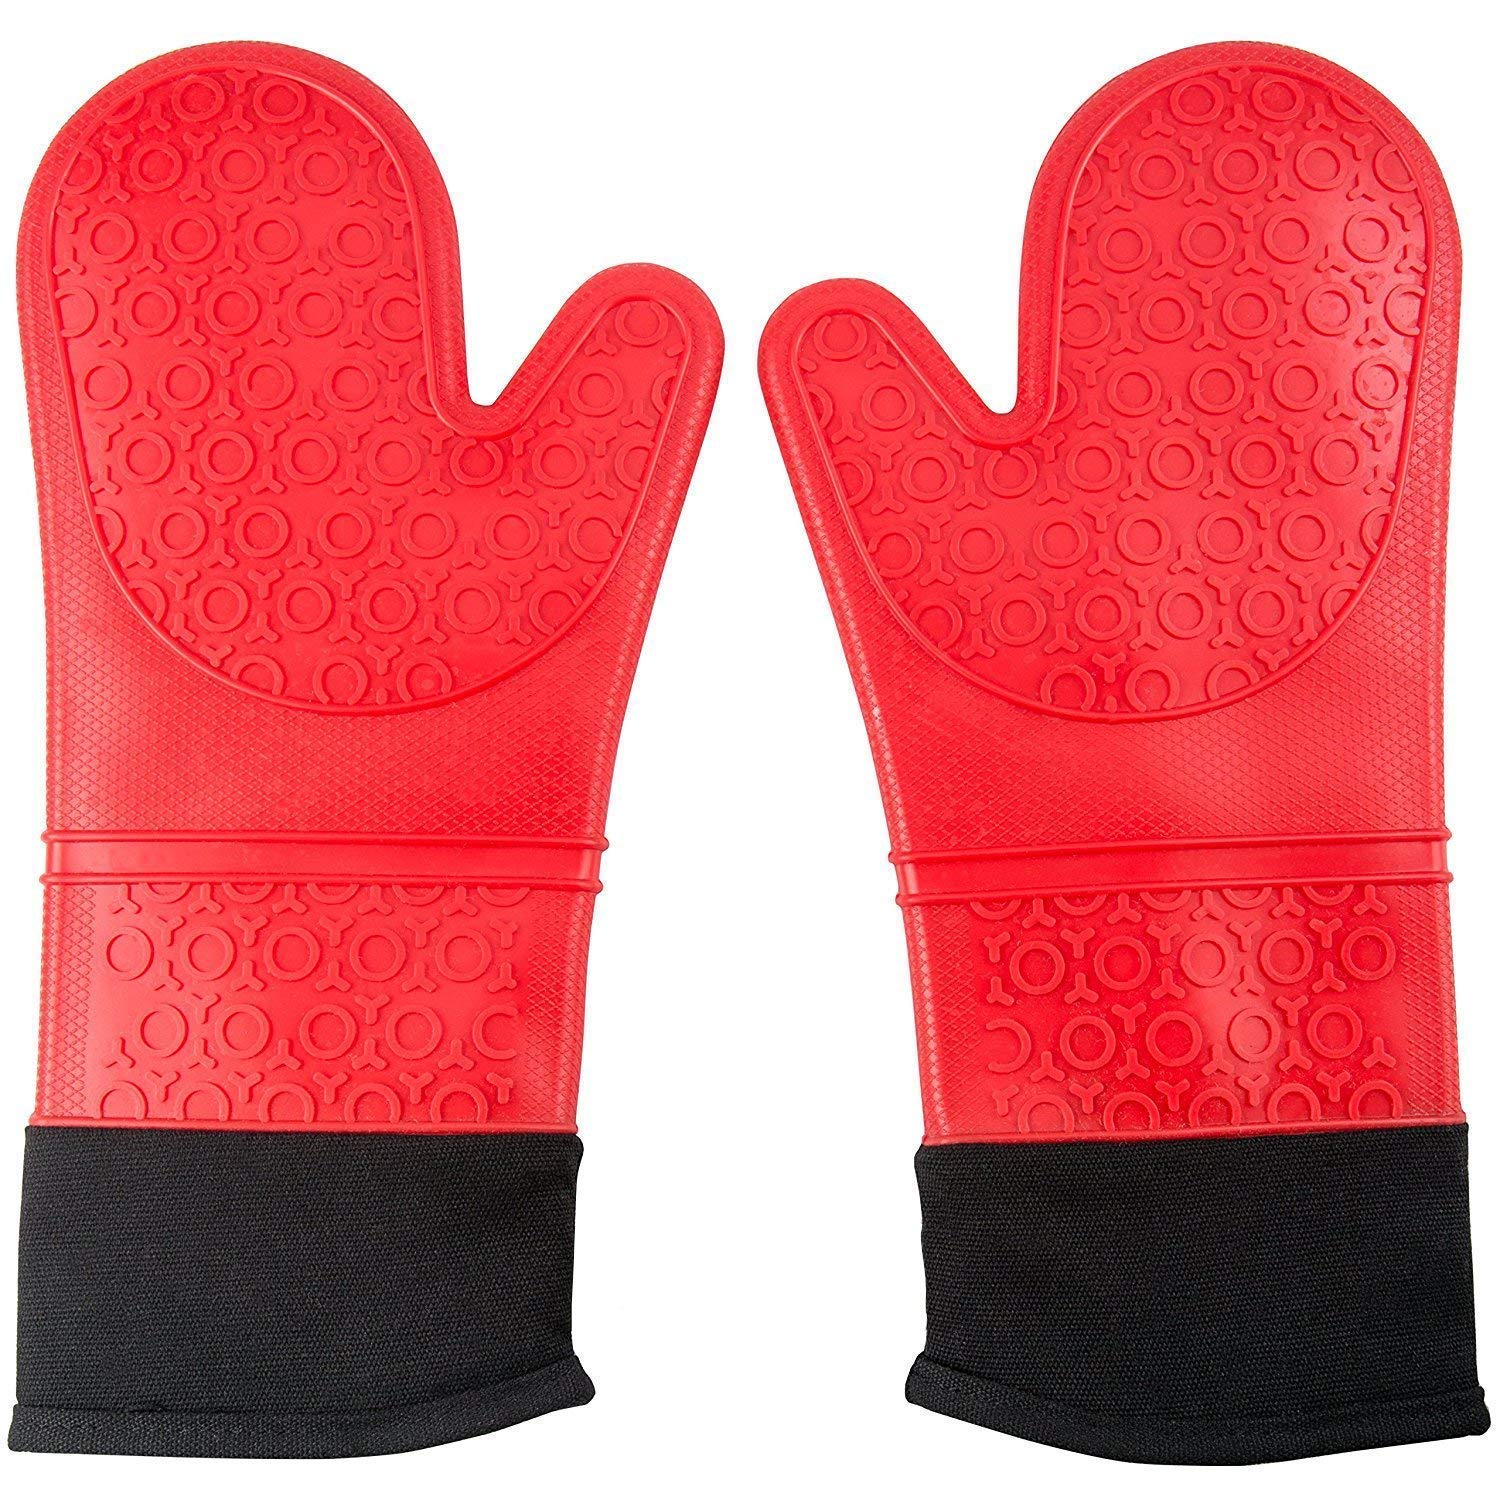 LOAZRE 20 Heat Resistant Silicone Oven Mitts for 500F with Waterproof, Professional Heat Resistant Potholder Kitchen Gloves -1 Pair (Red)